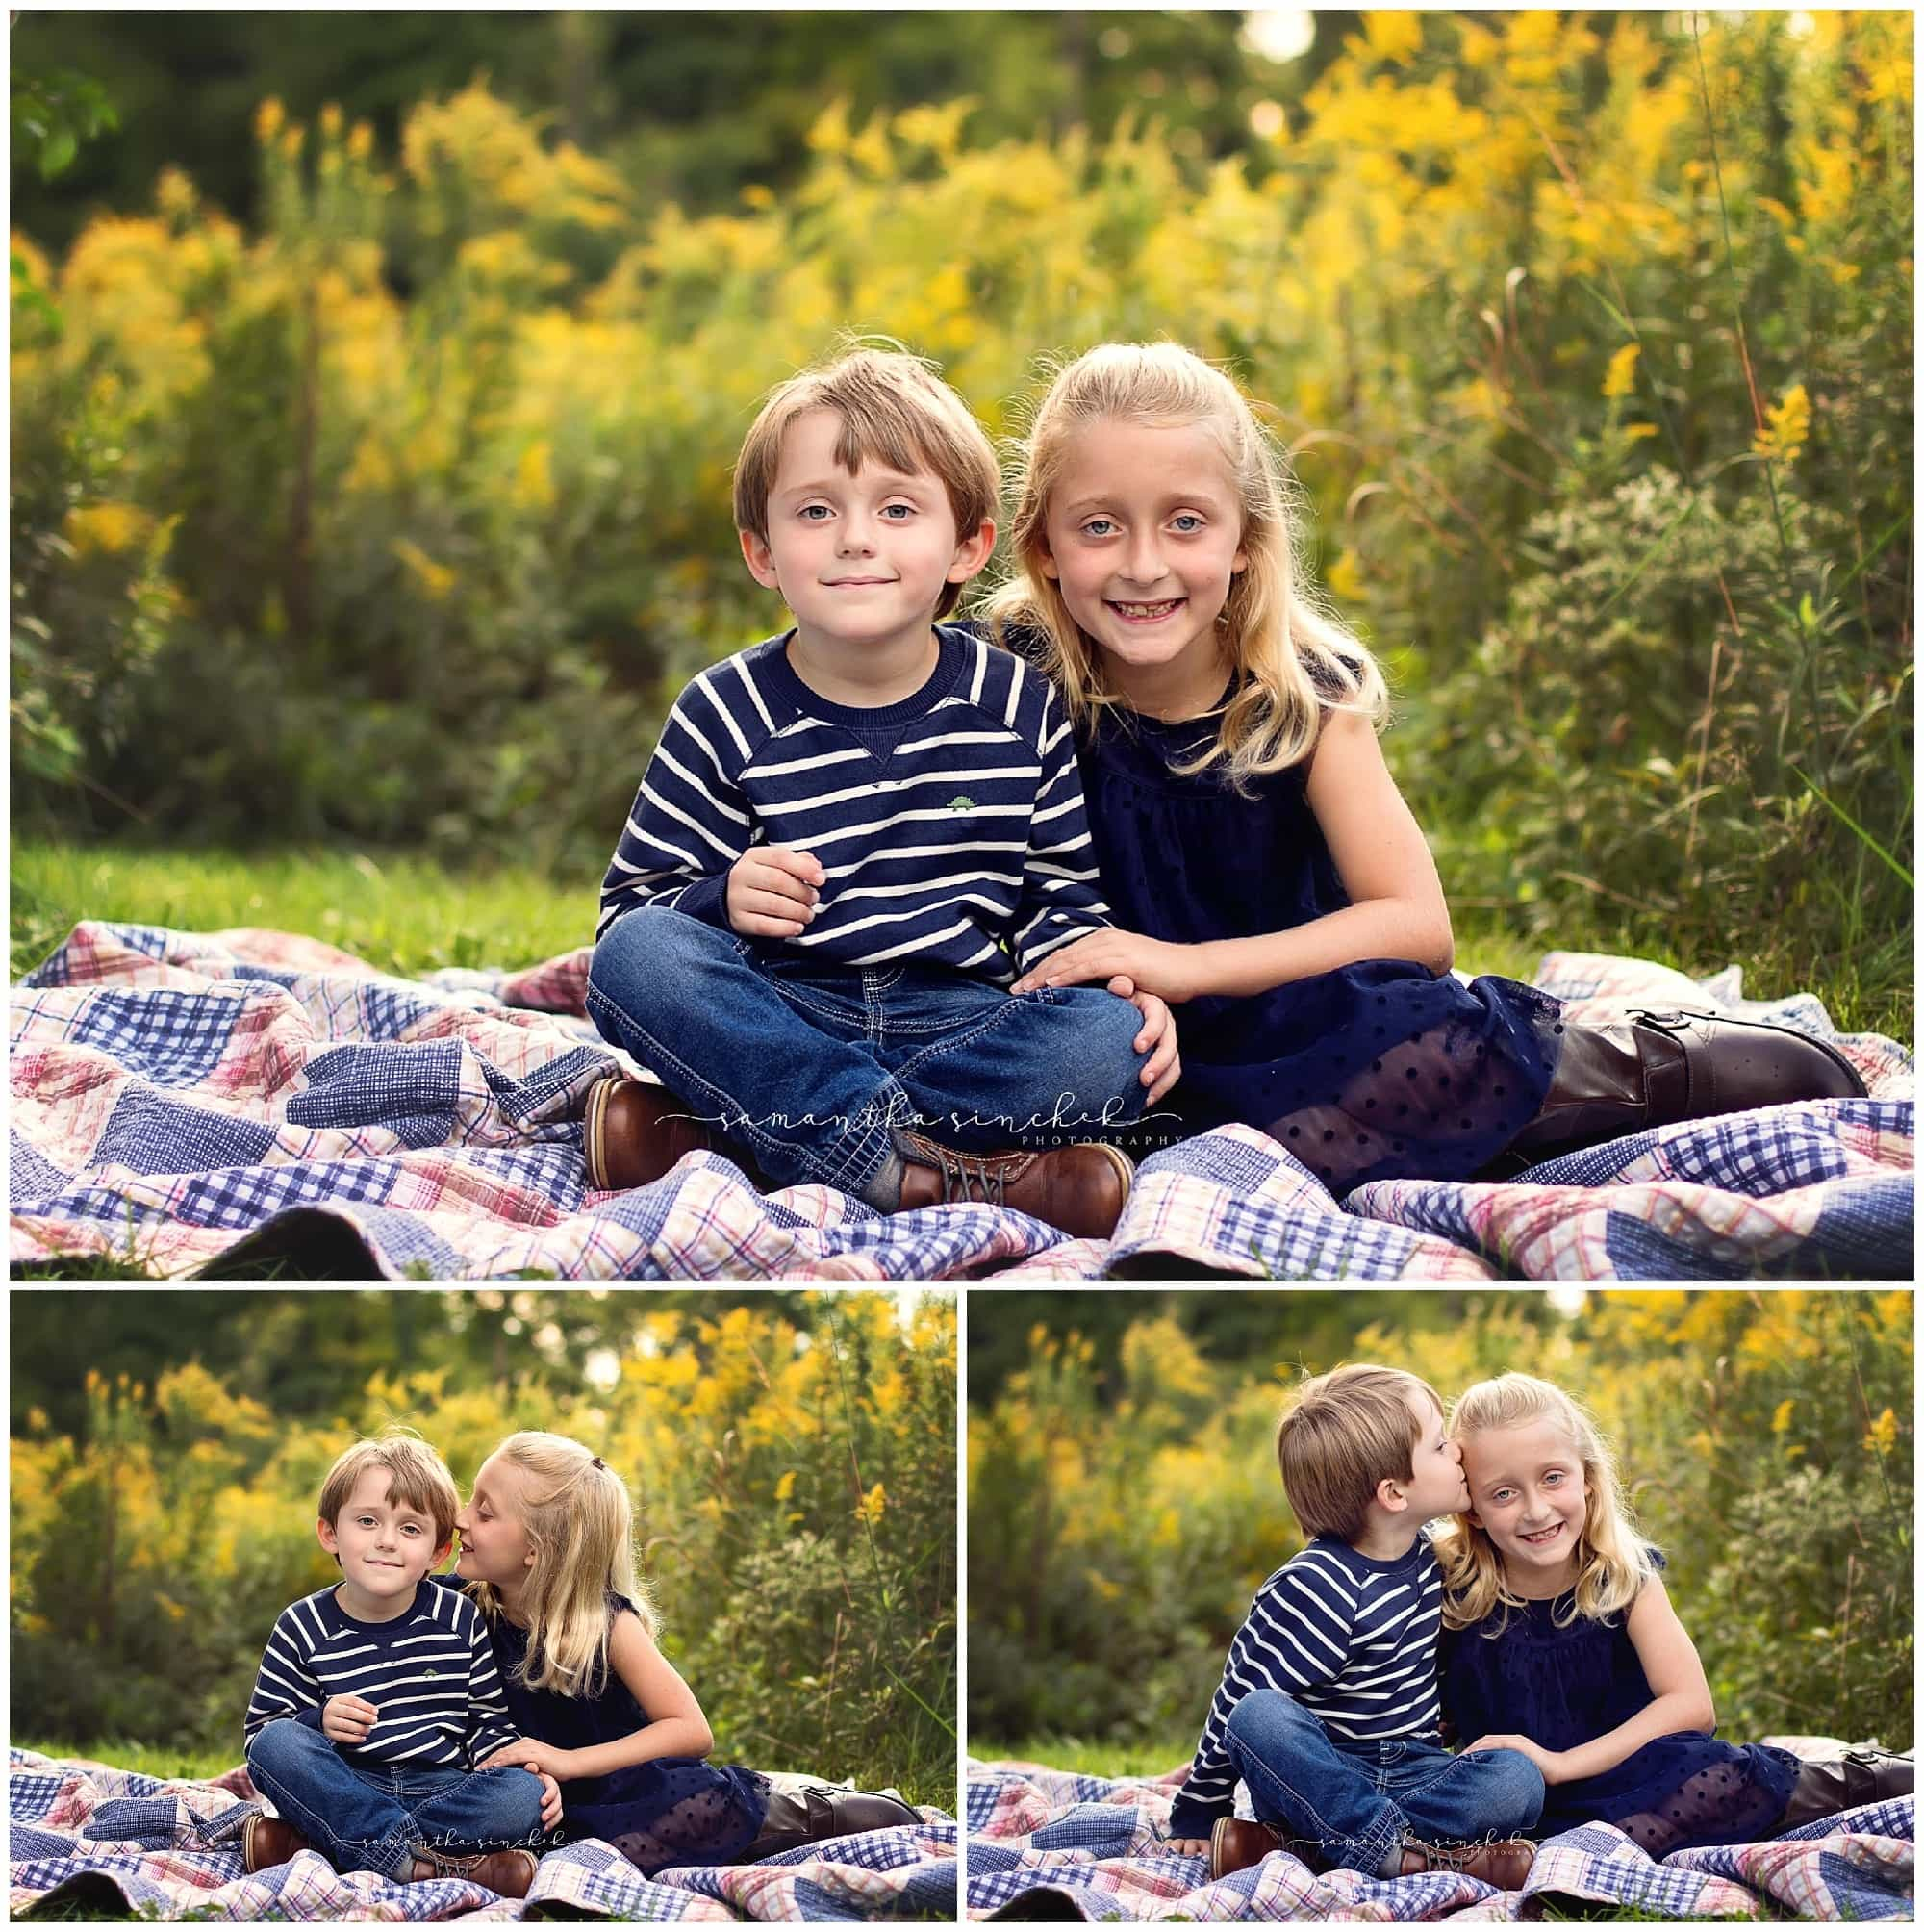 brother and sister pictures at Ault Park Cincinnati with beautiful fall colors